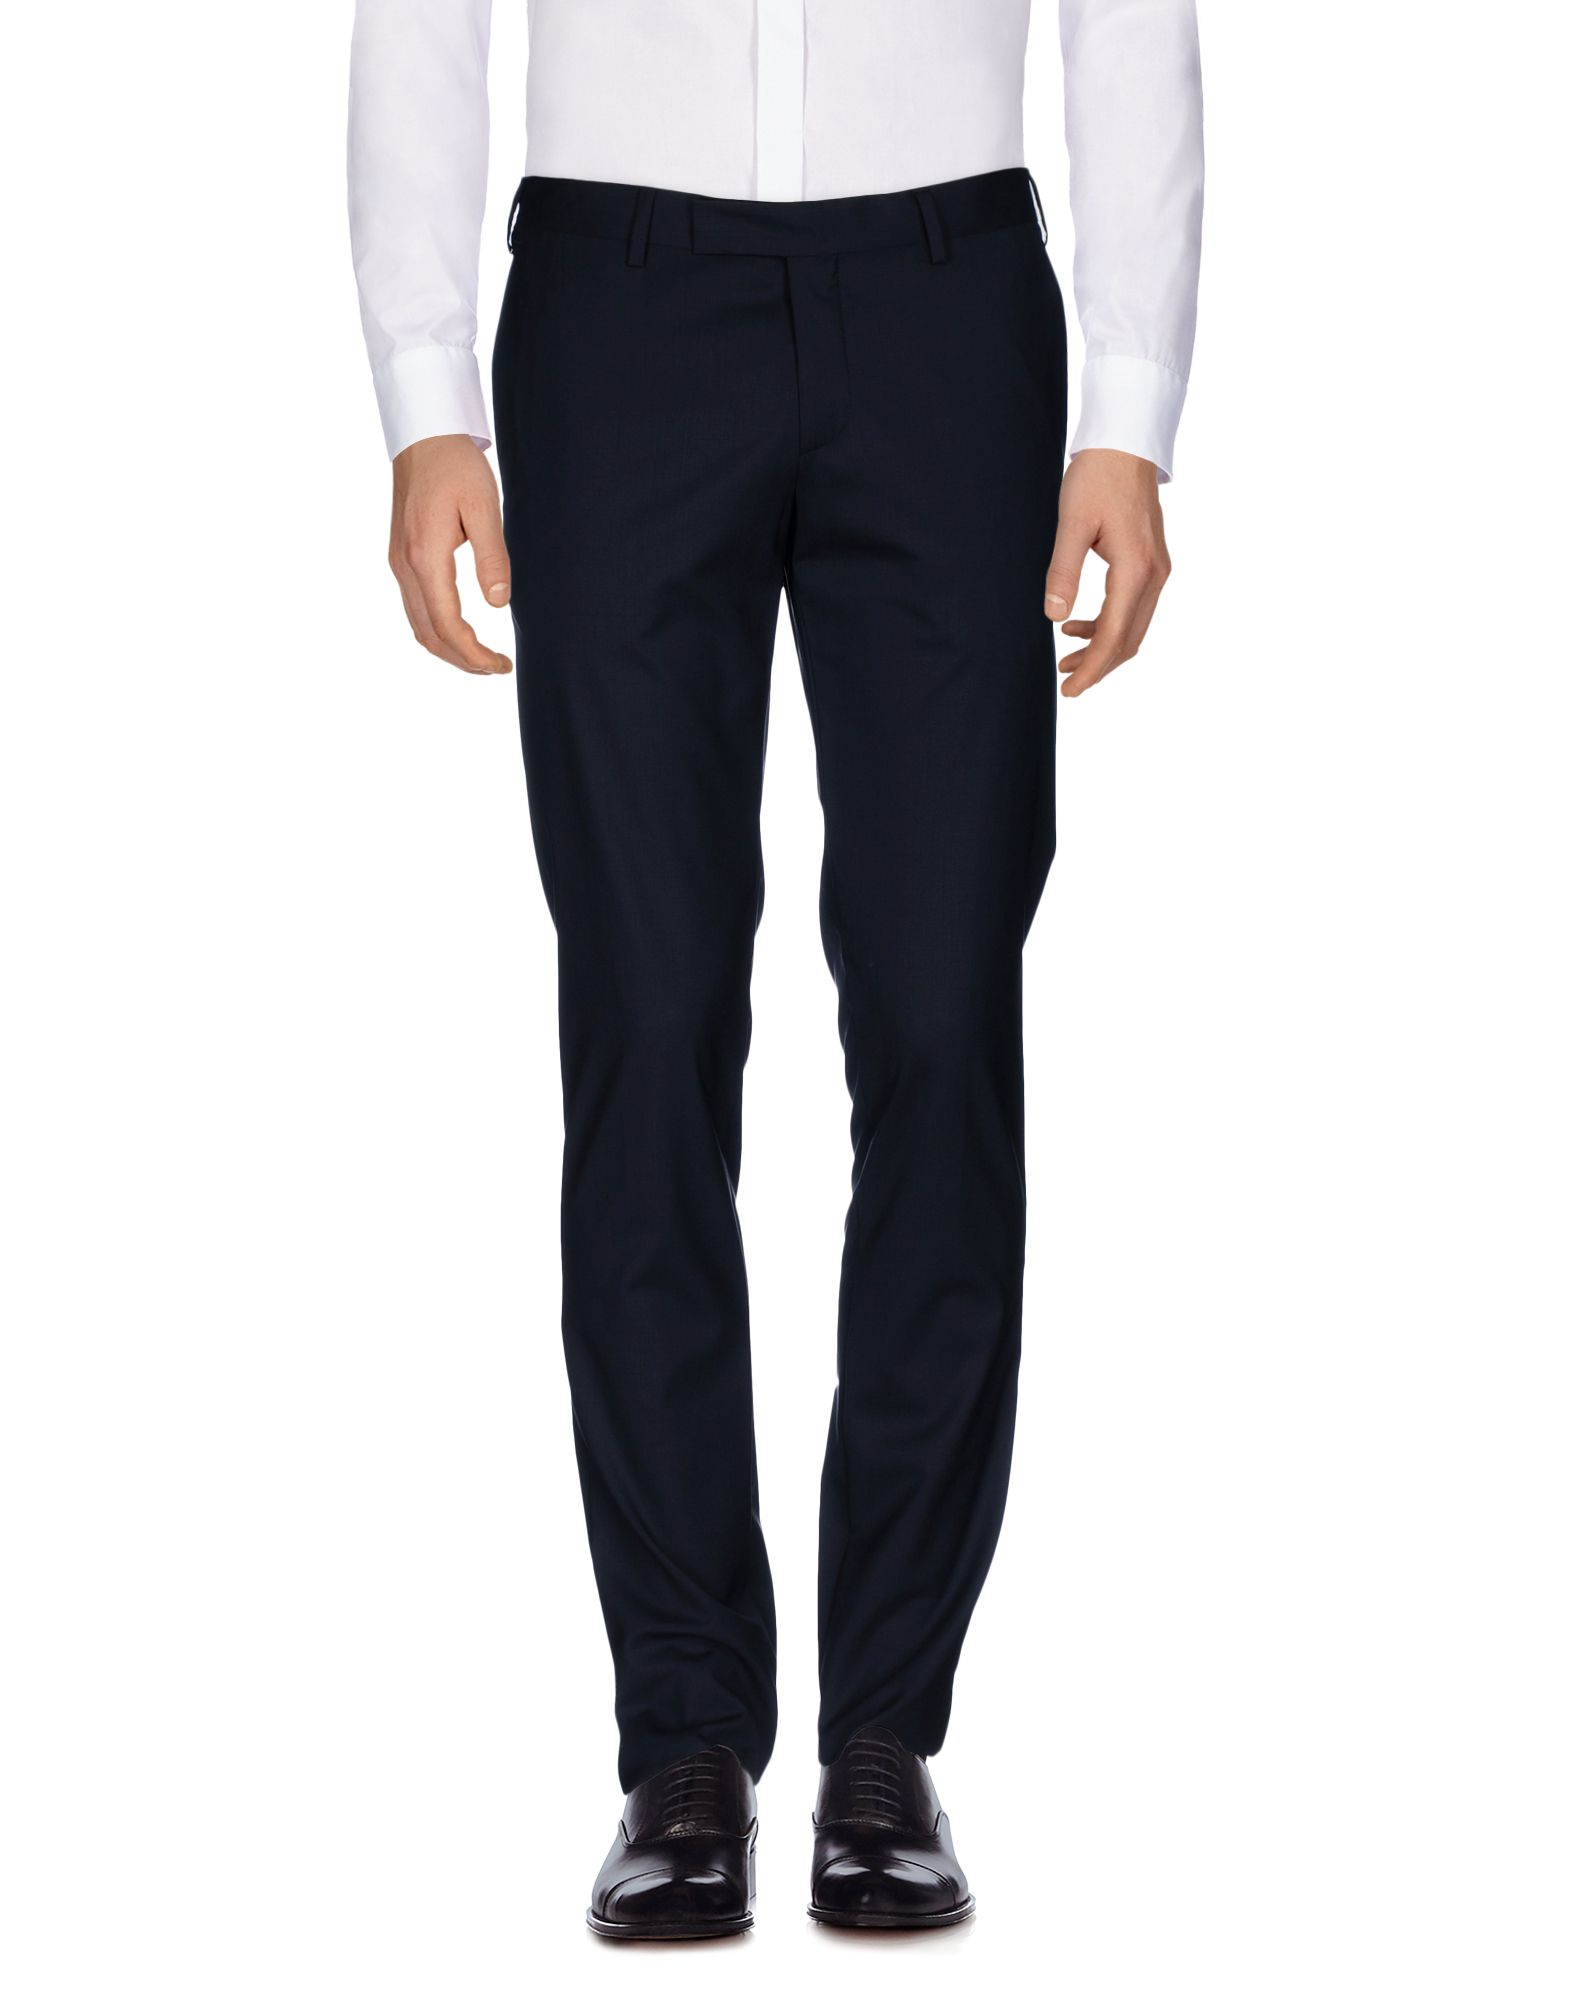 Pantalone Royal Row Uomo - Acquista online su